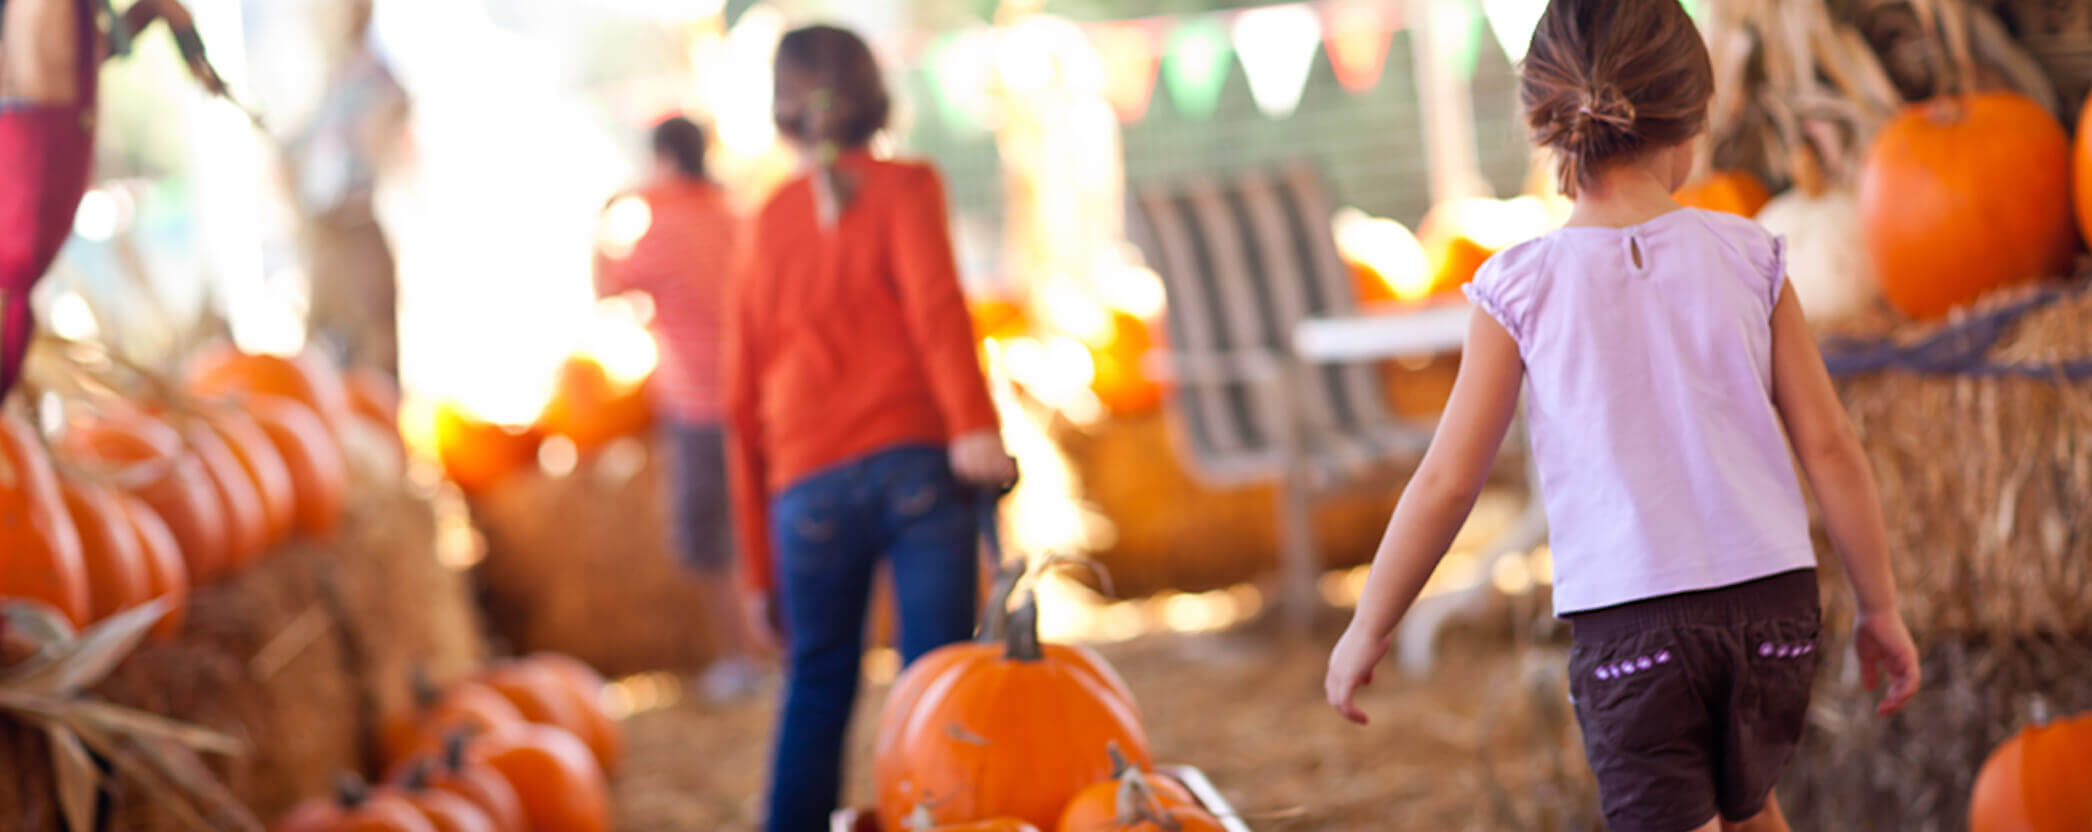 Kids carrying pumpkins at a fall festival.